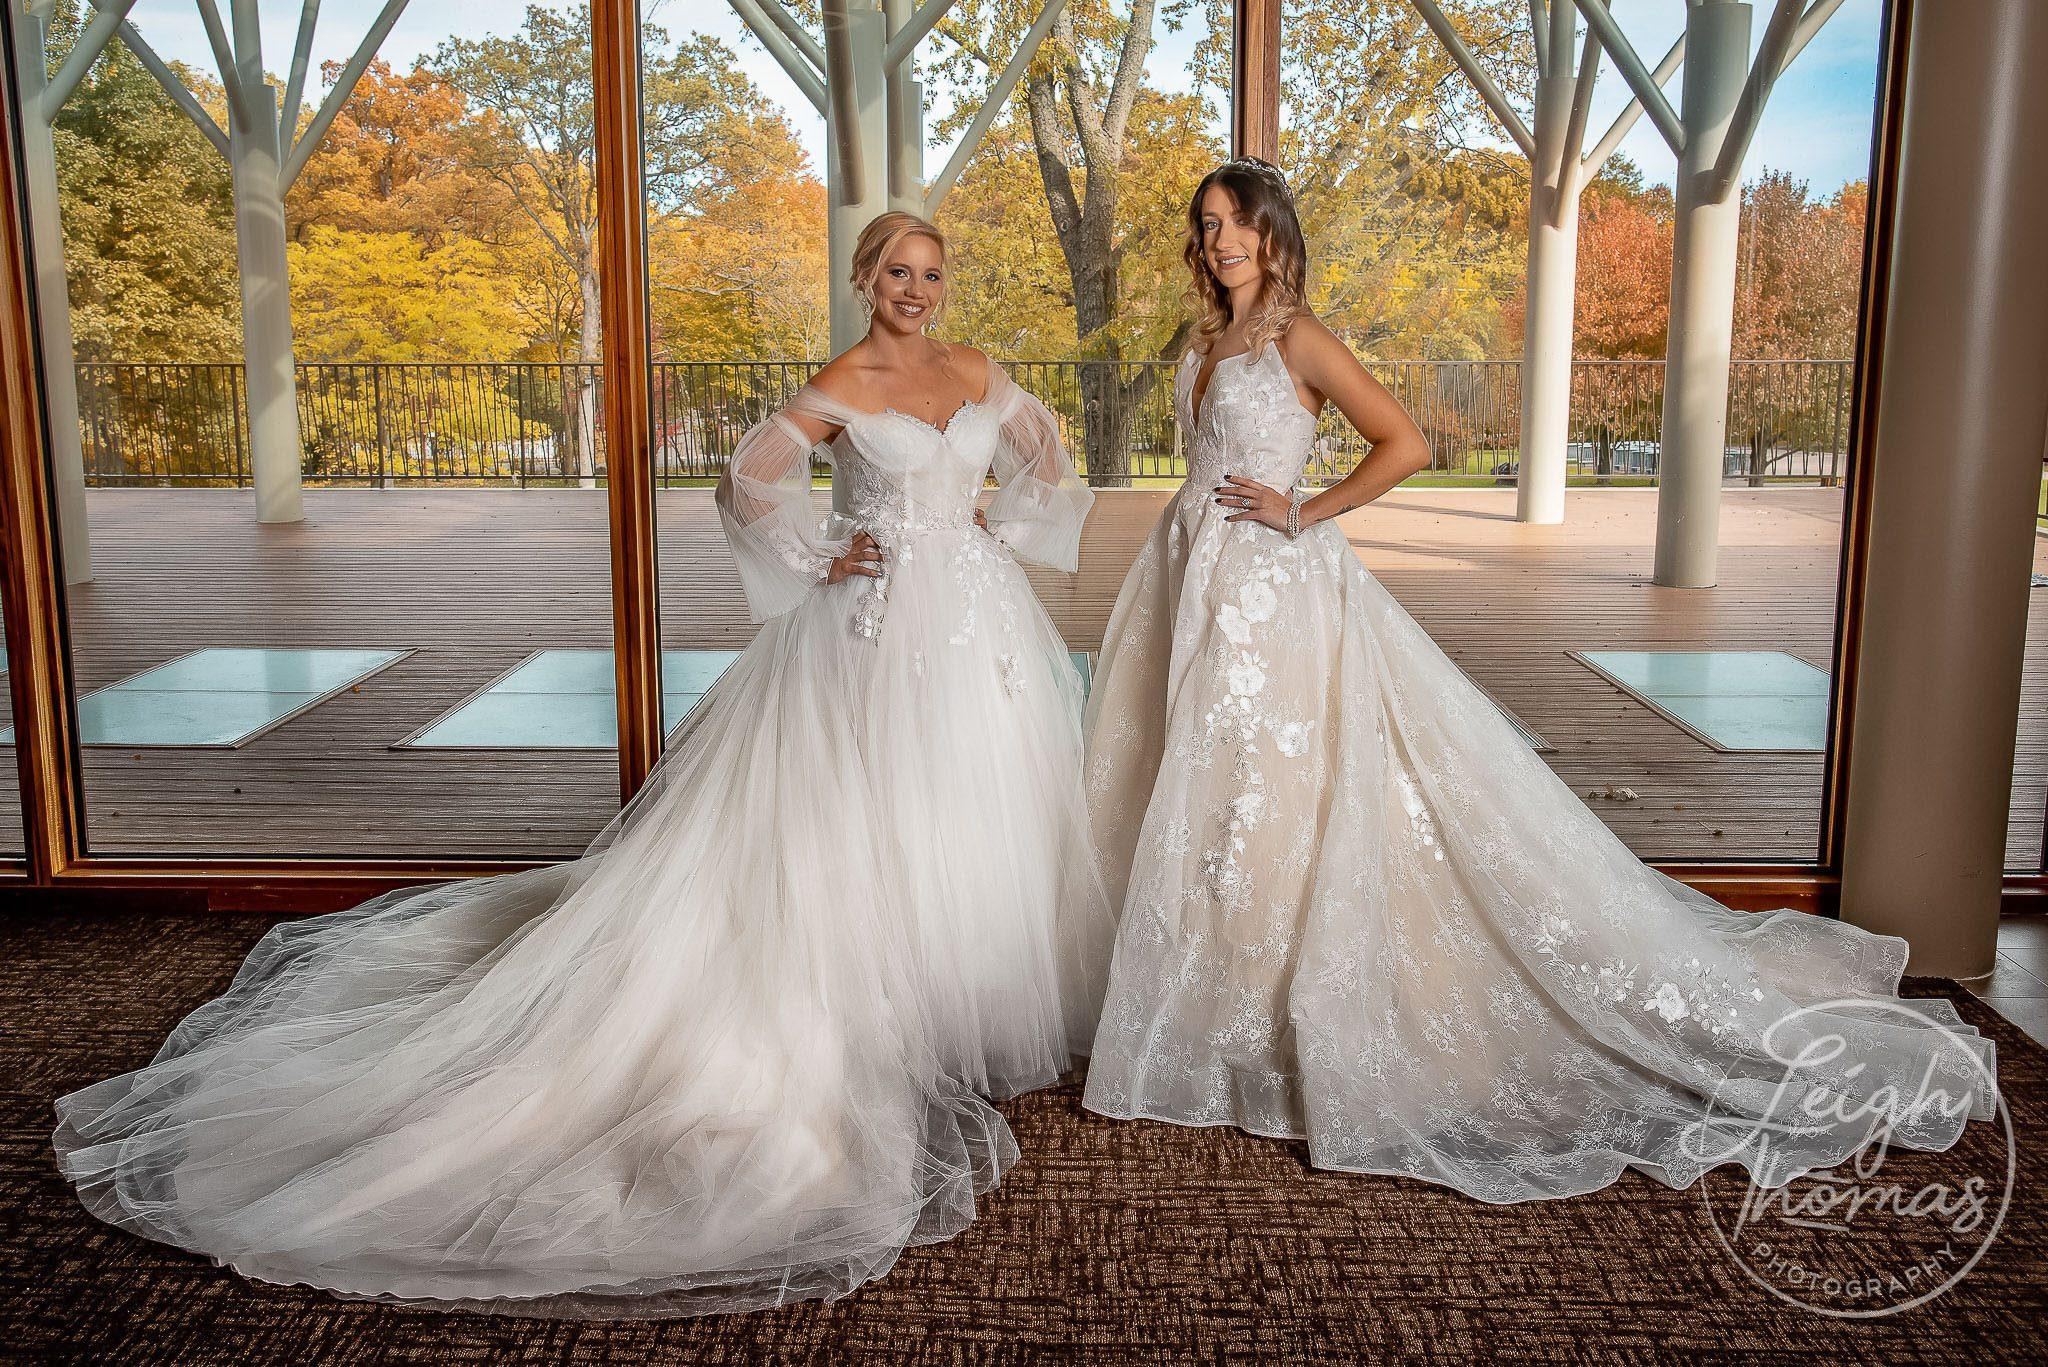 BECCAR Bridal Gown - Volle's Bridal - February 2020